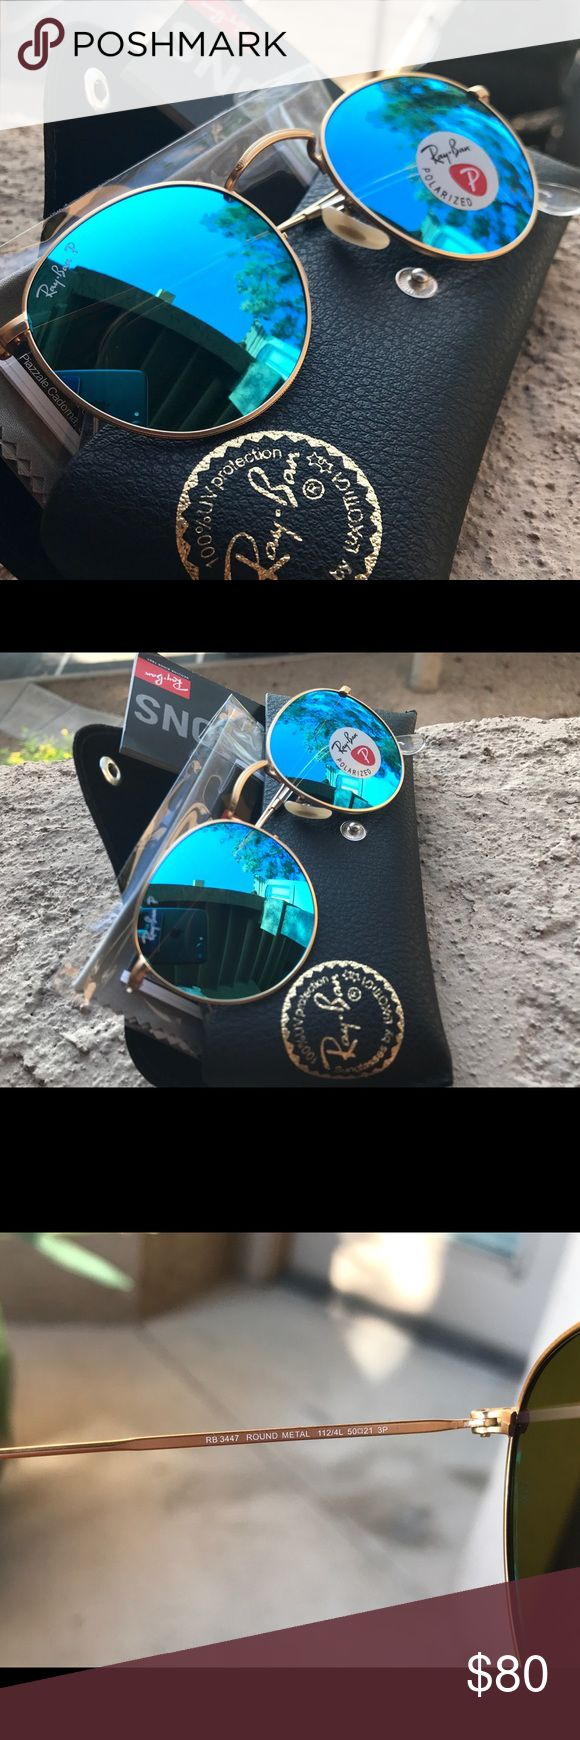 New Ray-Ban Round Blue RB 3025 58mm size - brand new - model: RB3025 112/4L Ray-Ban Accessories Sunglasses